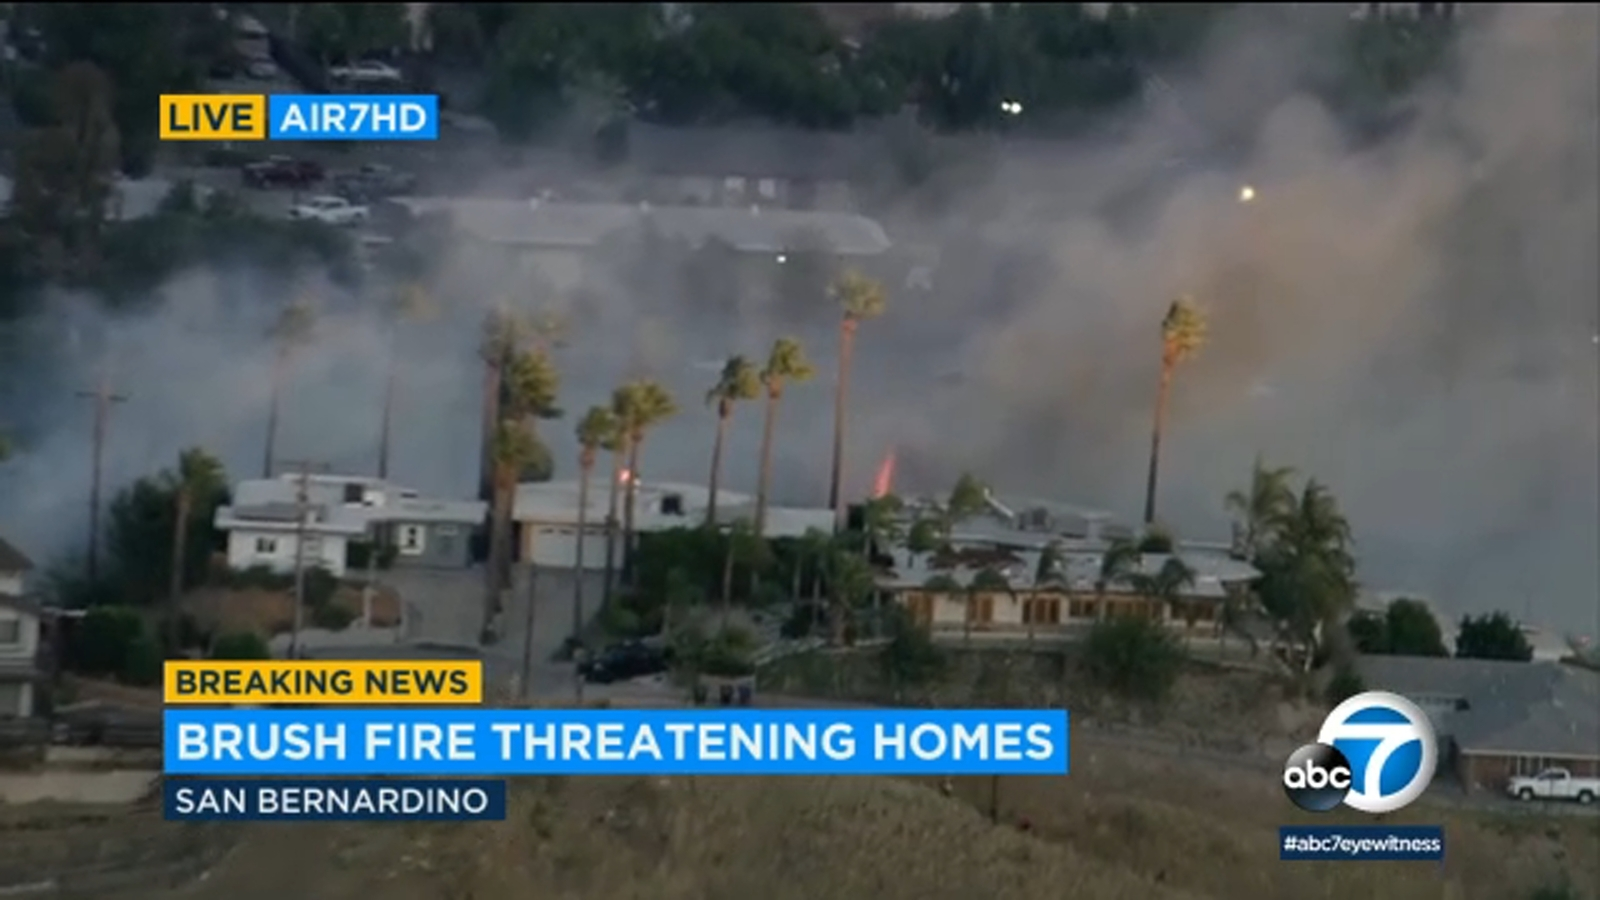 Fire erupts in Little Mountain area of San Bernardino; structures burning - LIVE